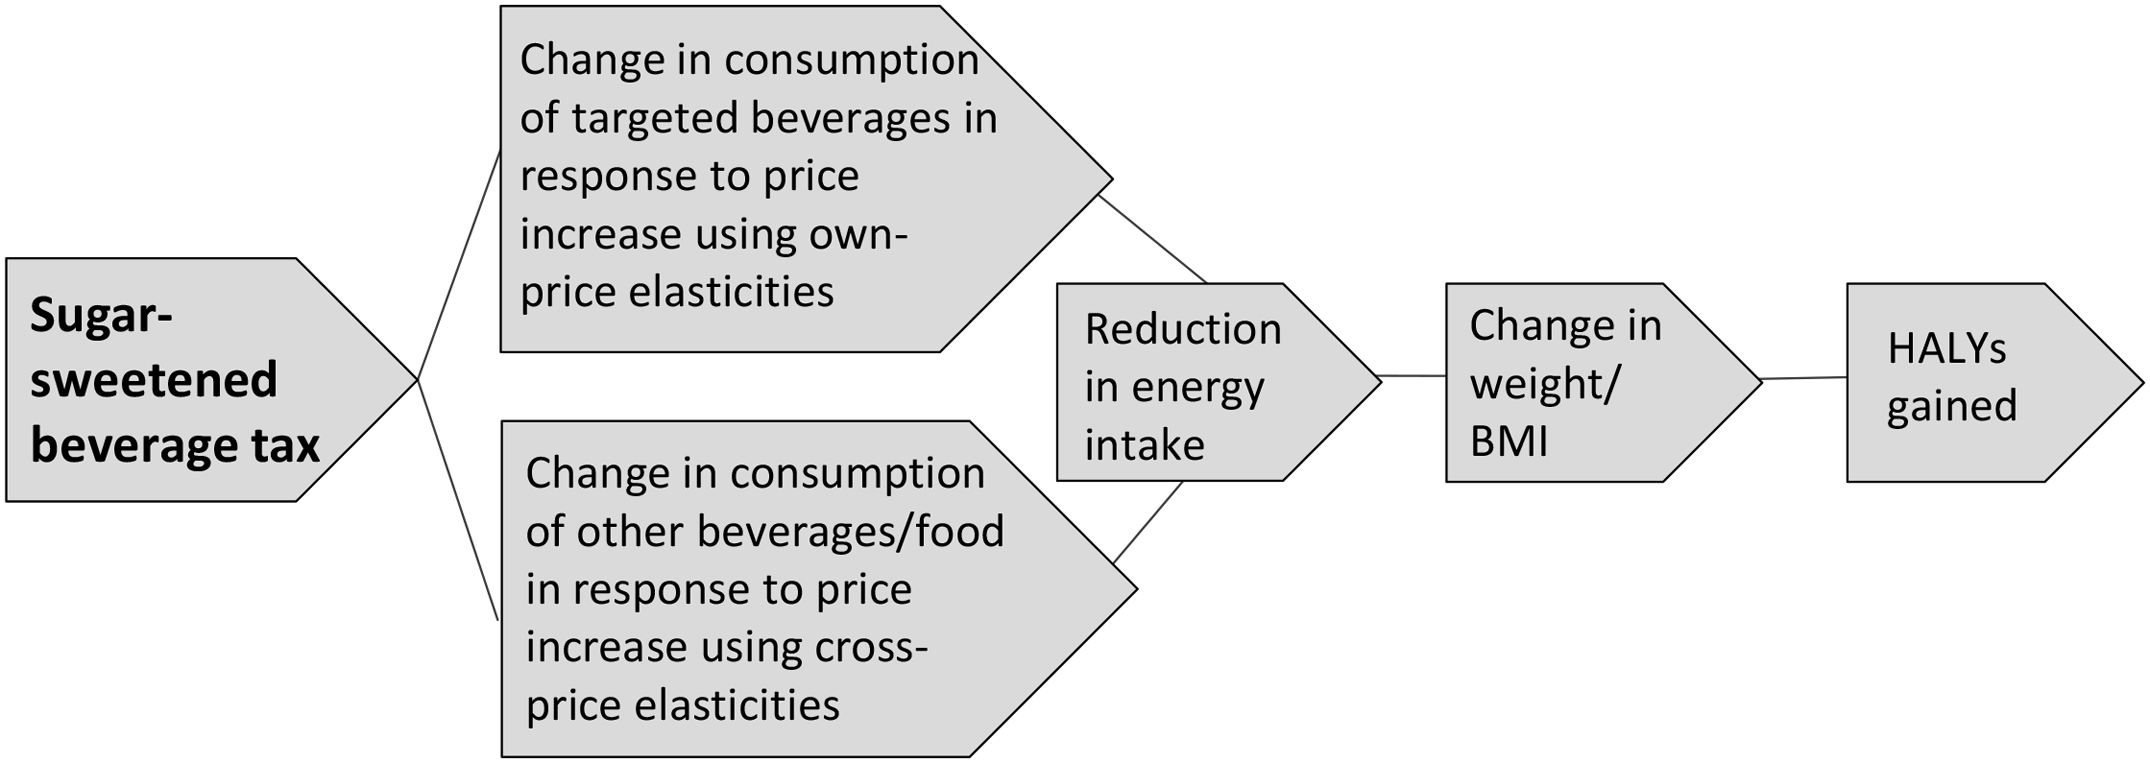 Logic pathway for modelling the health effects of a sugar-sweetened beverage tax.